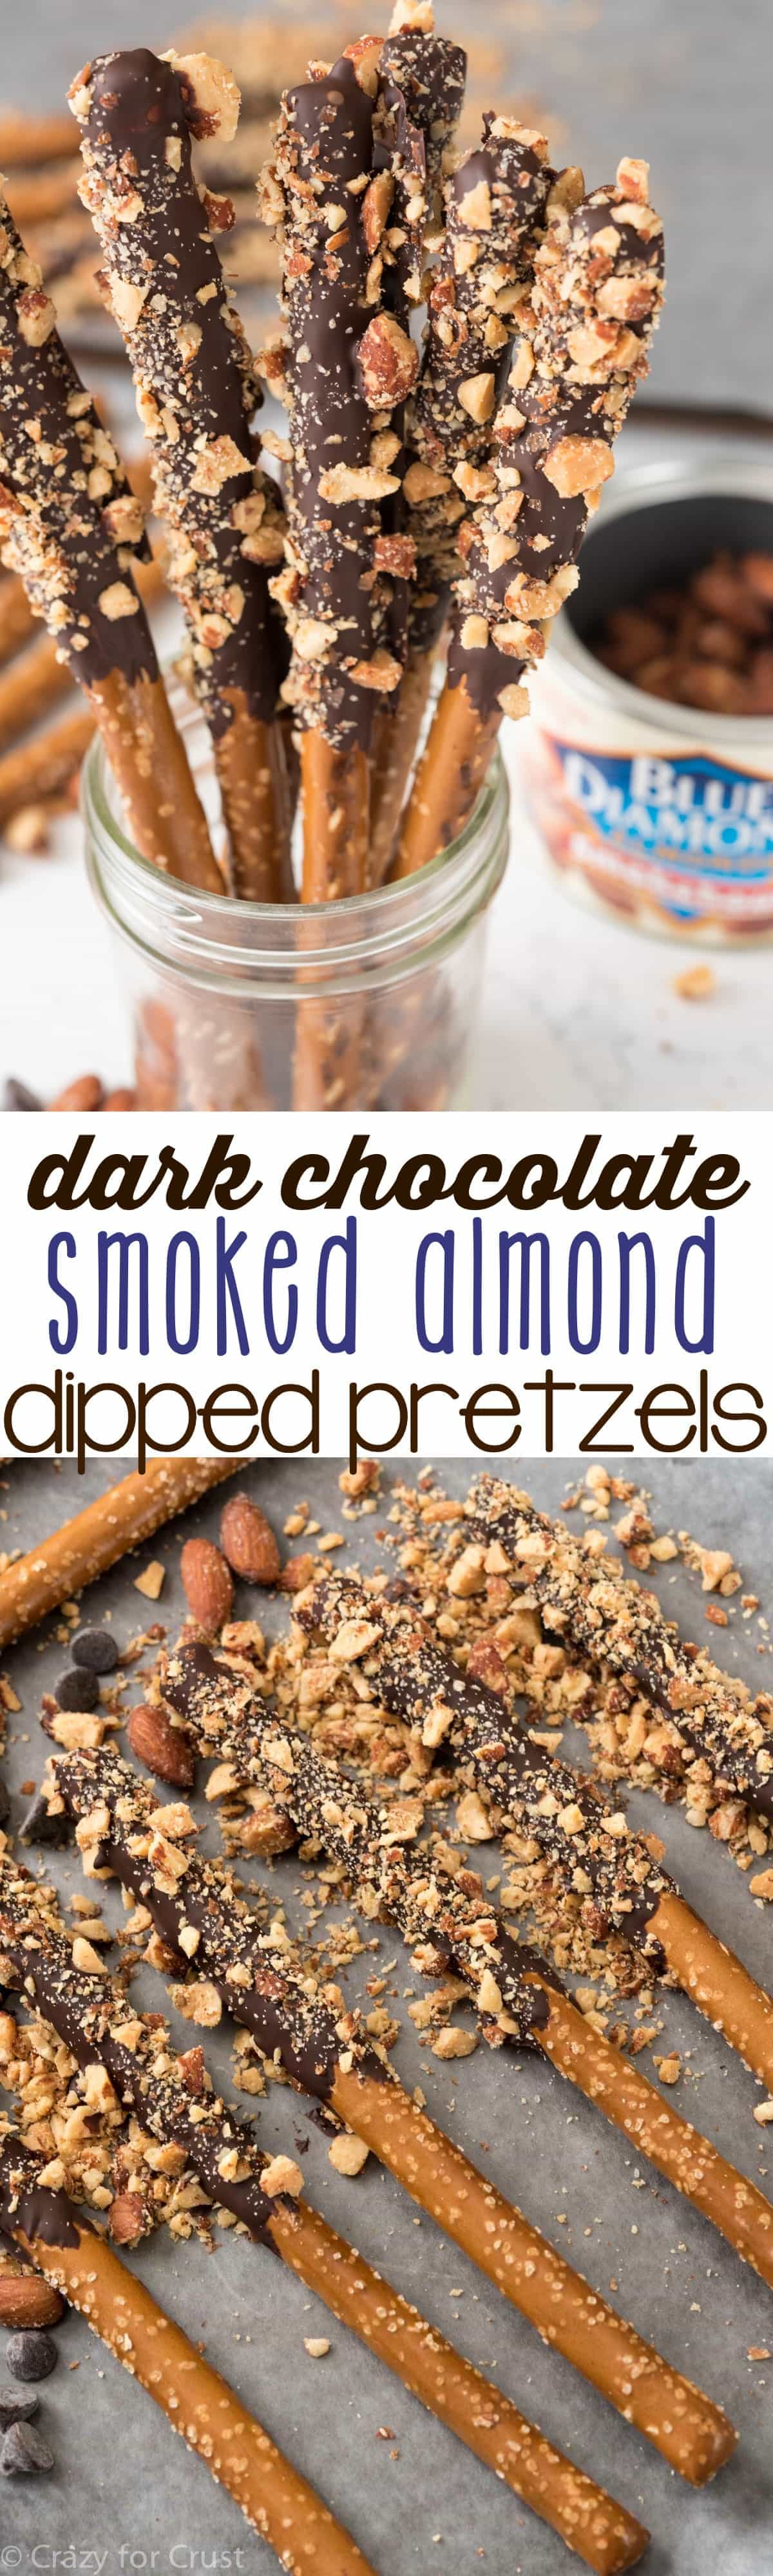 Dark Chocolate Almond Dipped Pretzels - this easy recipe is perfect for parties or homemade gifts for the holidays! Only 3 ingredients and they only take minutes to make!